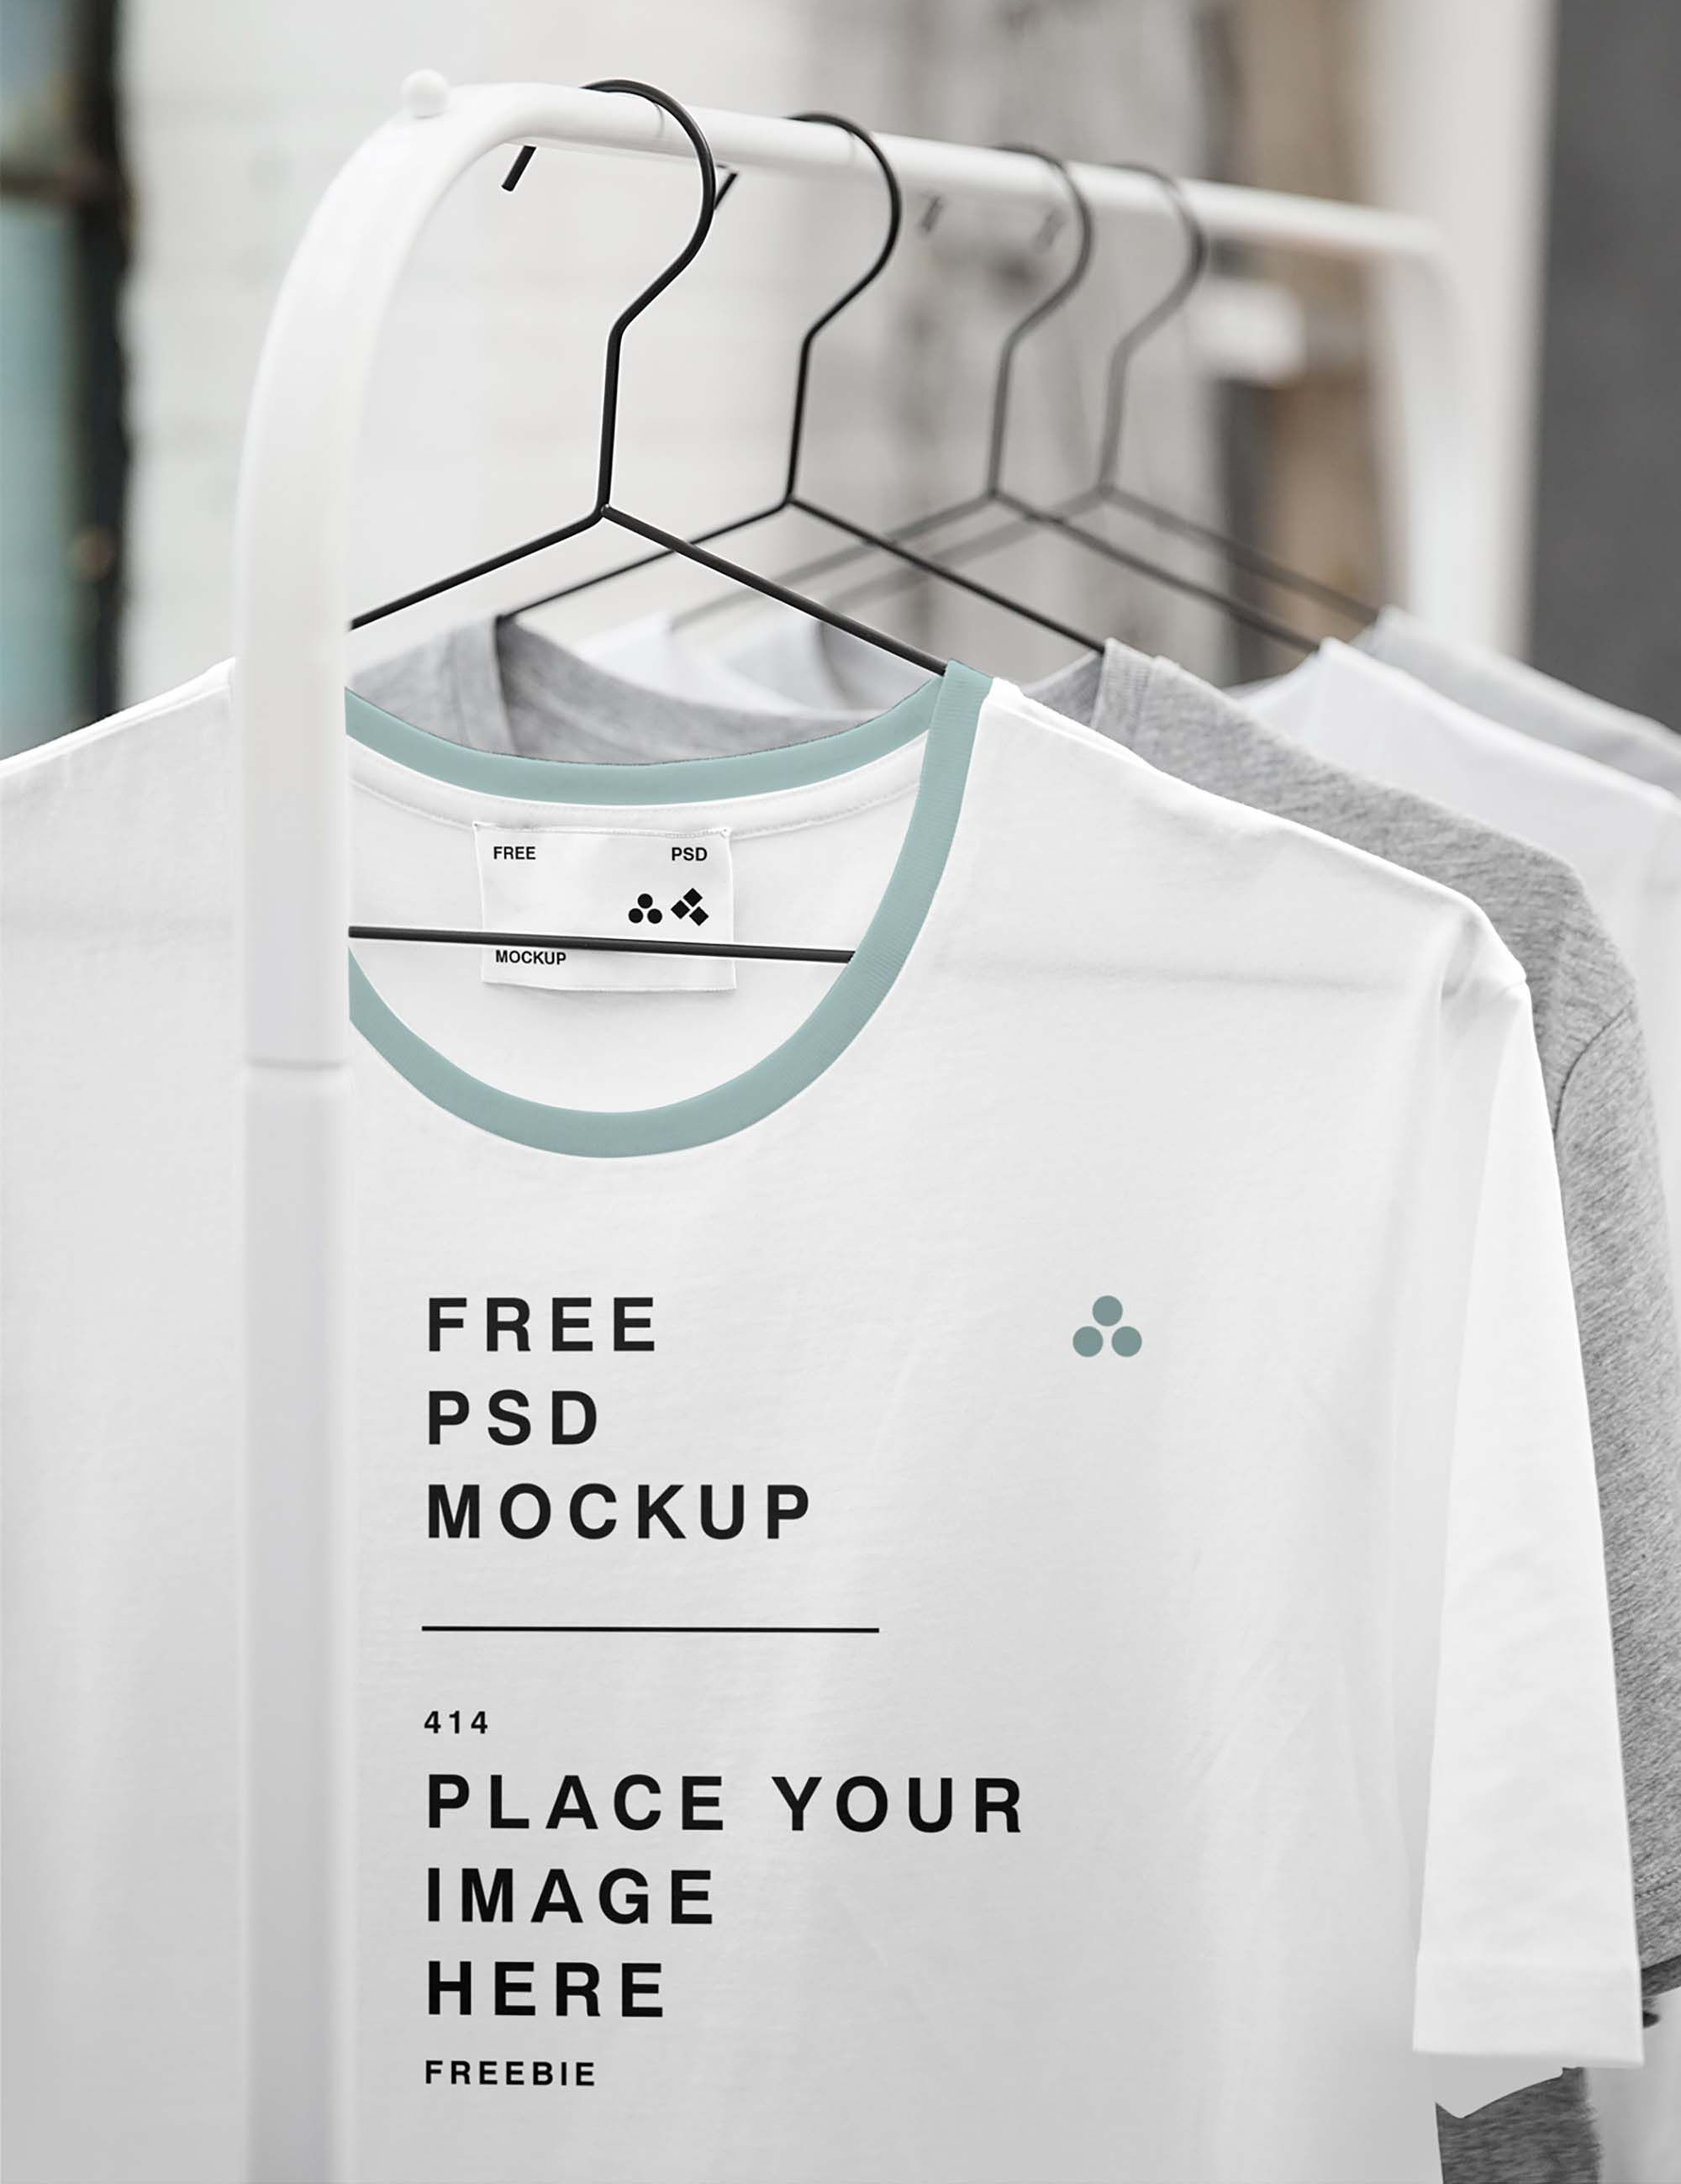 Download Clothing Store Hanged T Shirt Mockup Tshirt Mockup Free Clothing Mockup Tshirt Mockup